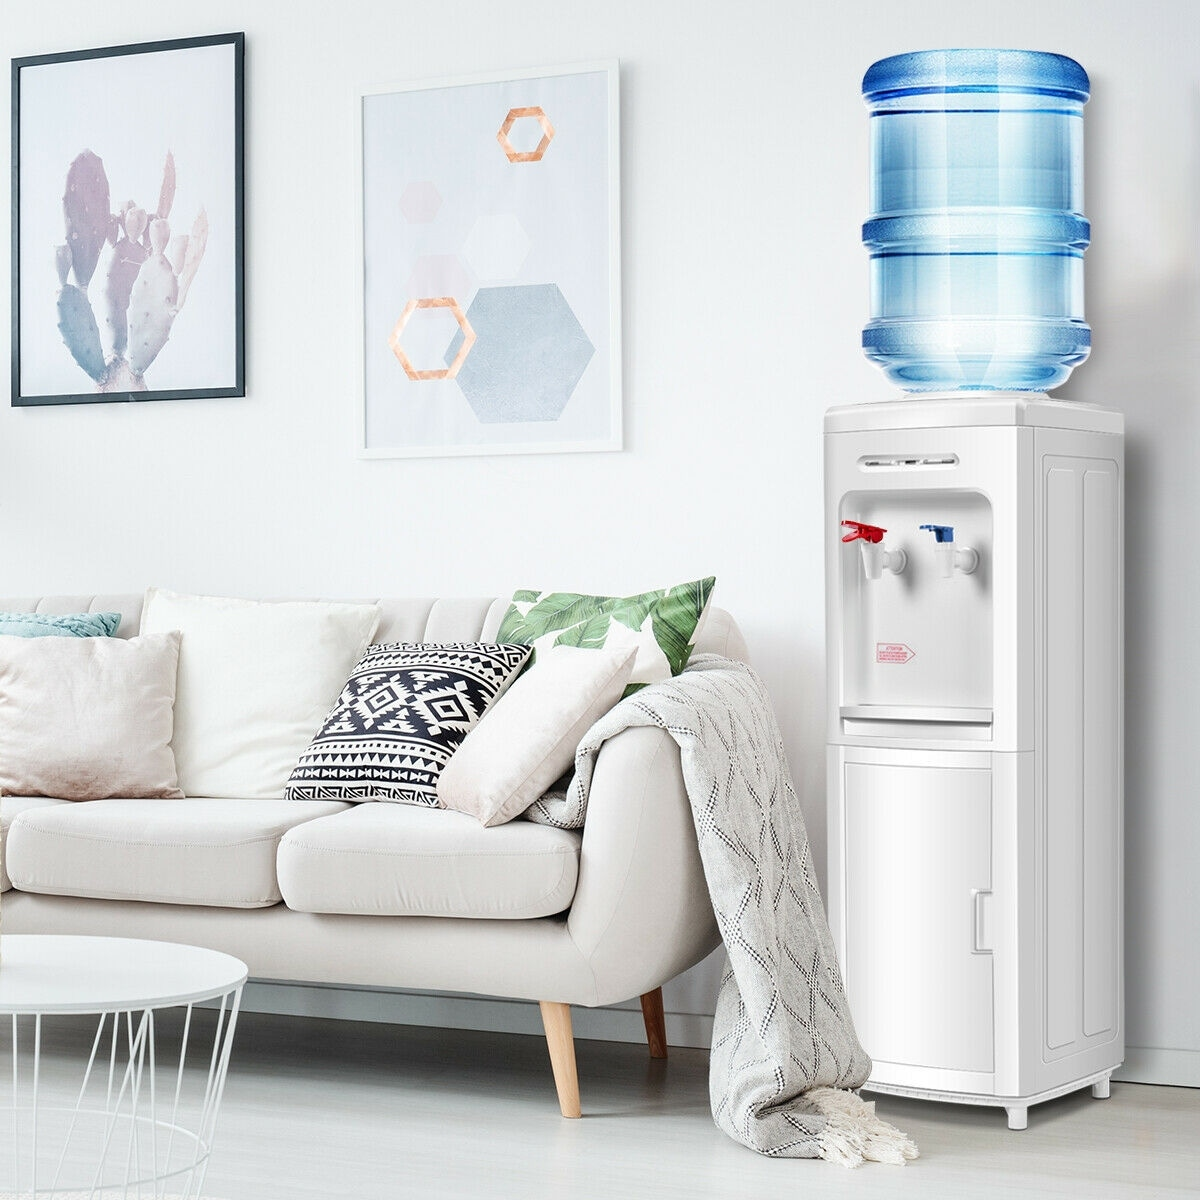 15d0c7efa3 Shop Water Dispenser 5 Gallon Bottle Load Electric Primo Home - White - On  Sale - Free Shipping Today - Overstock - 15633677